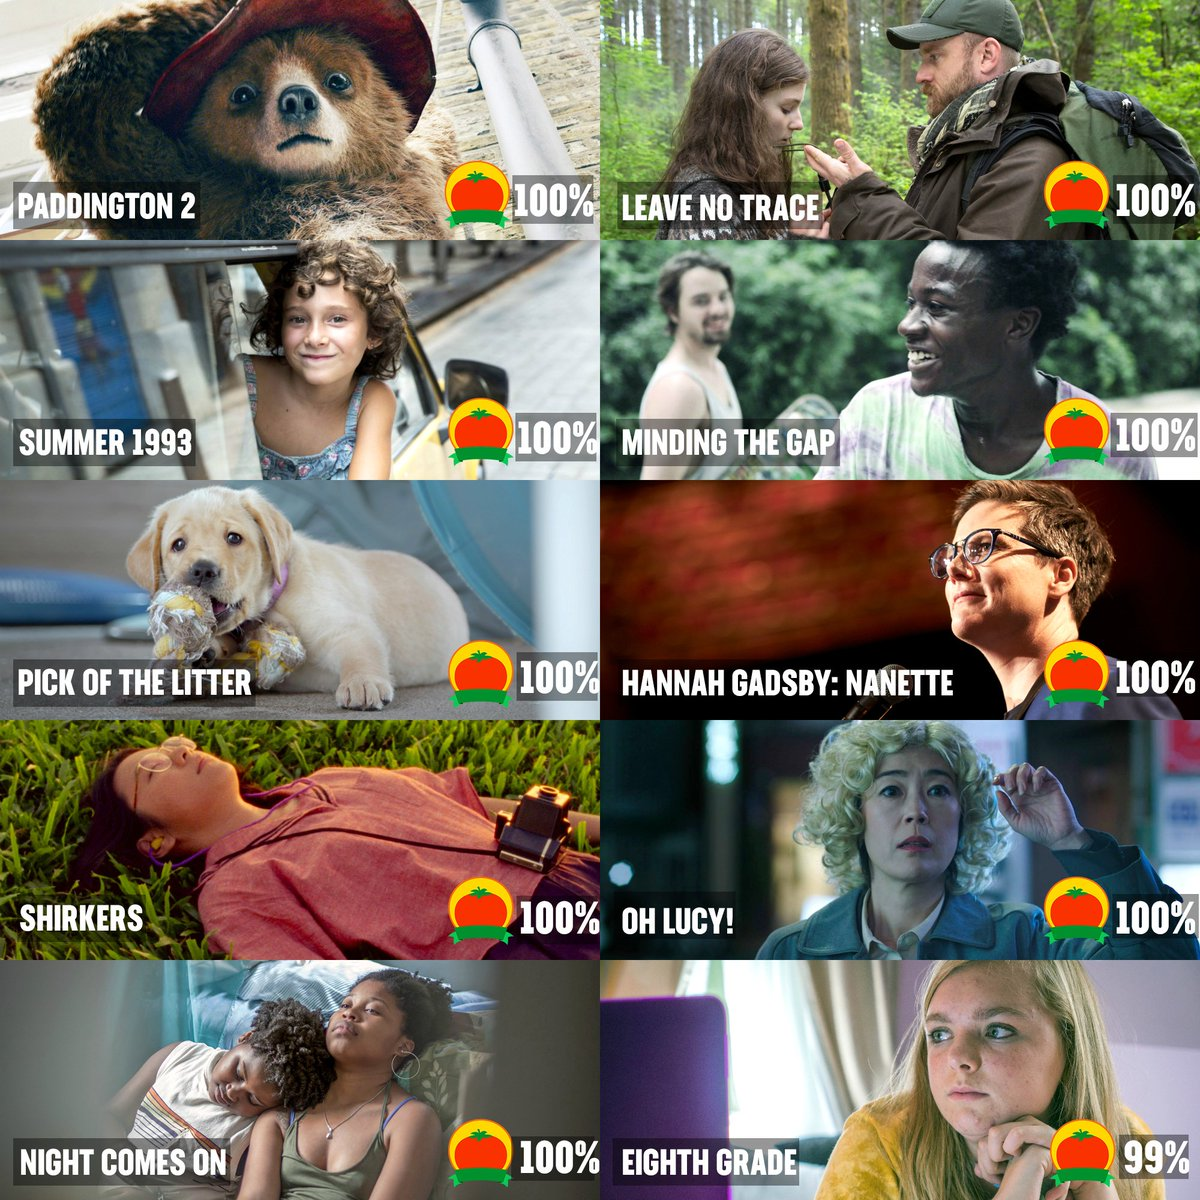 The Top 10 Movies of 2018 by #Tomatometer https://t.co/eCVN2lMHbU